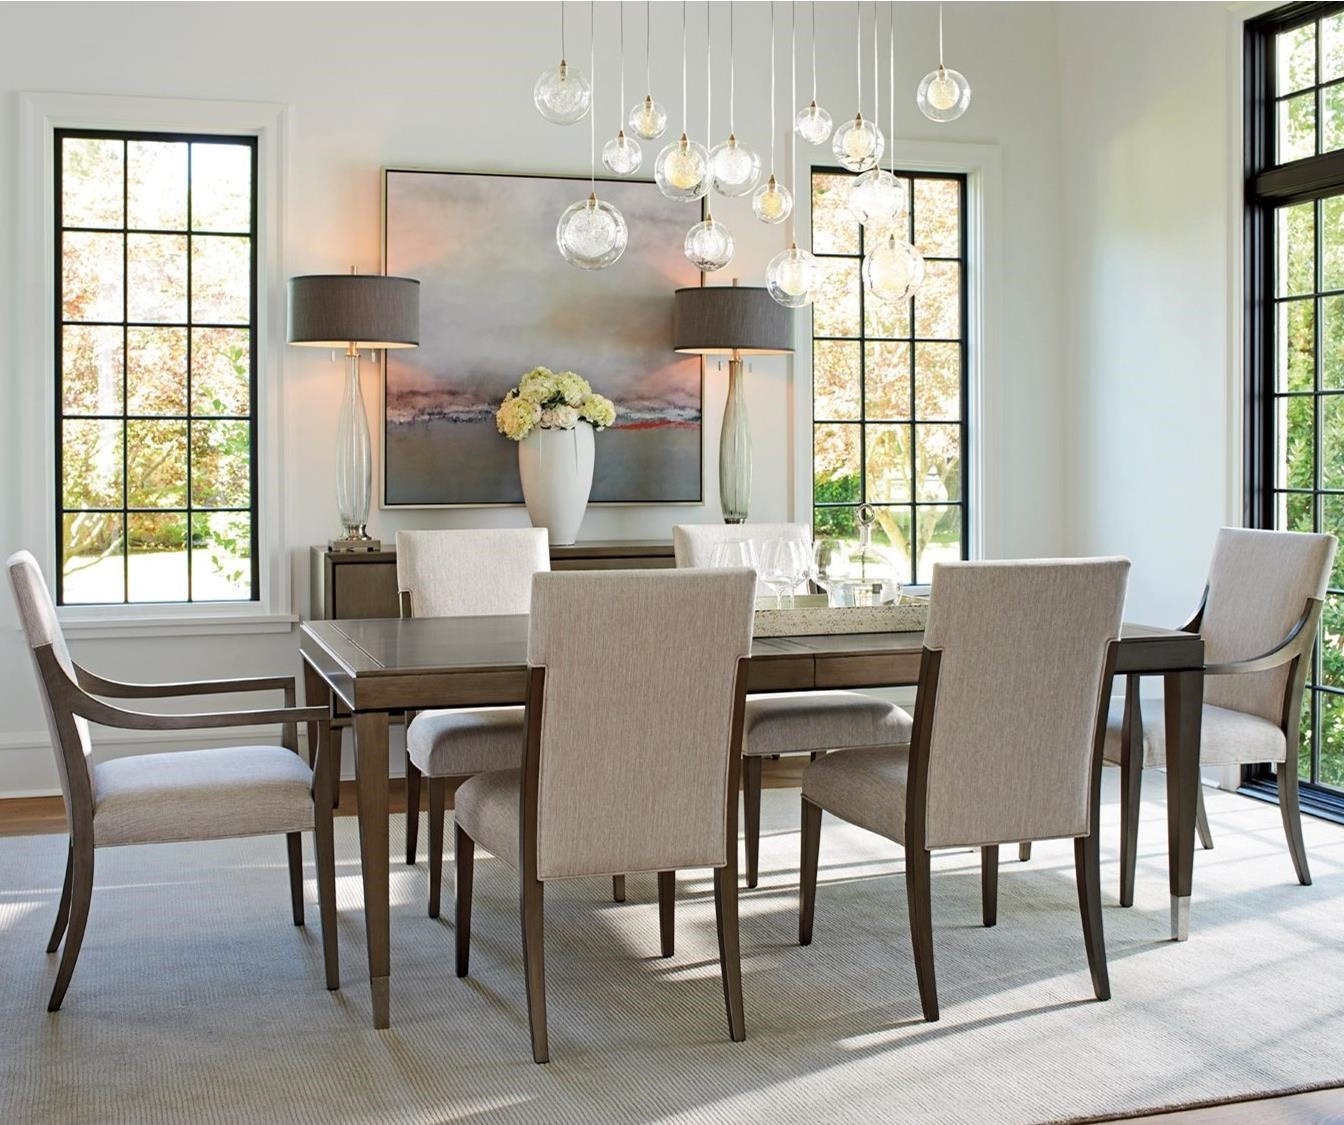 Ariana 7 Pc Dining Set by Lexington at Jacksonville Furniture Mart